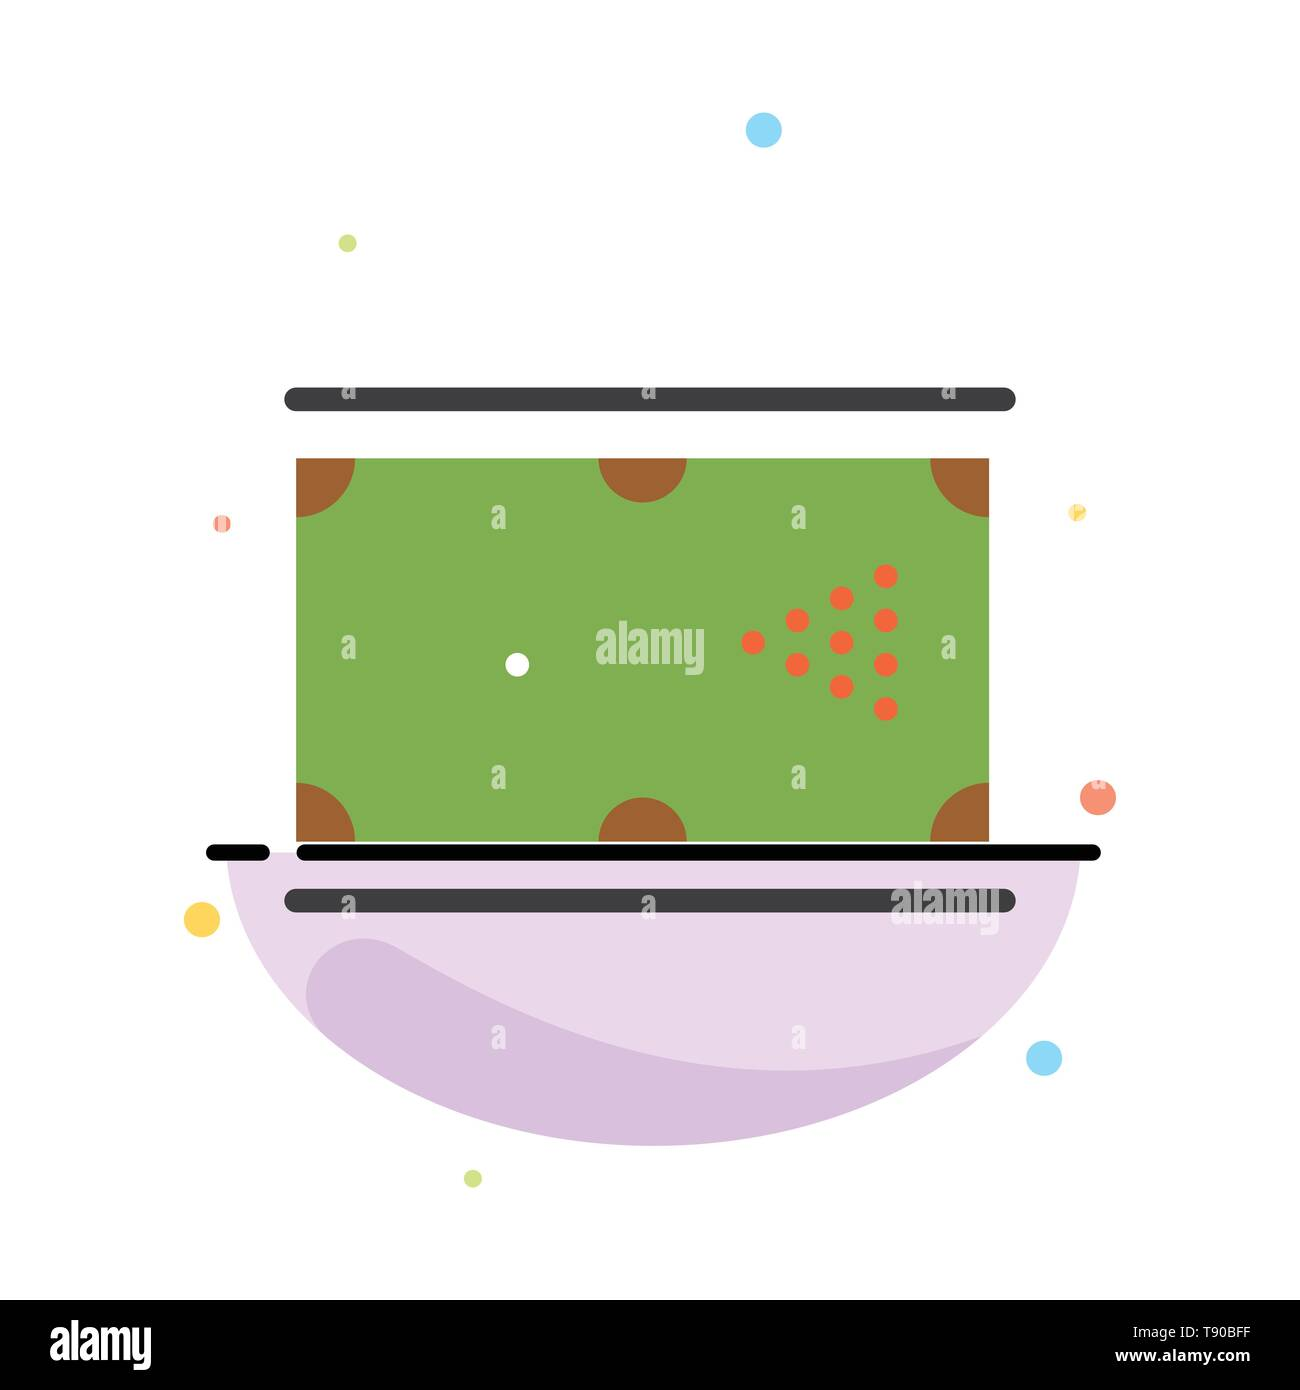 Billiards, Cue, Game, Pocket, Pool Abstract Flat Color Icon Template - Stock Vector